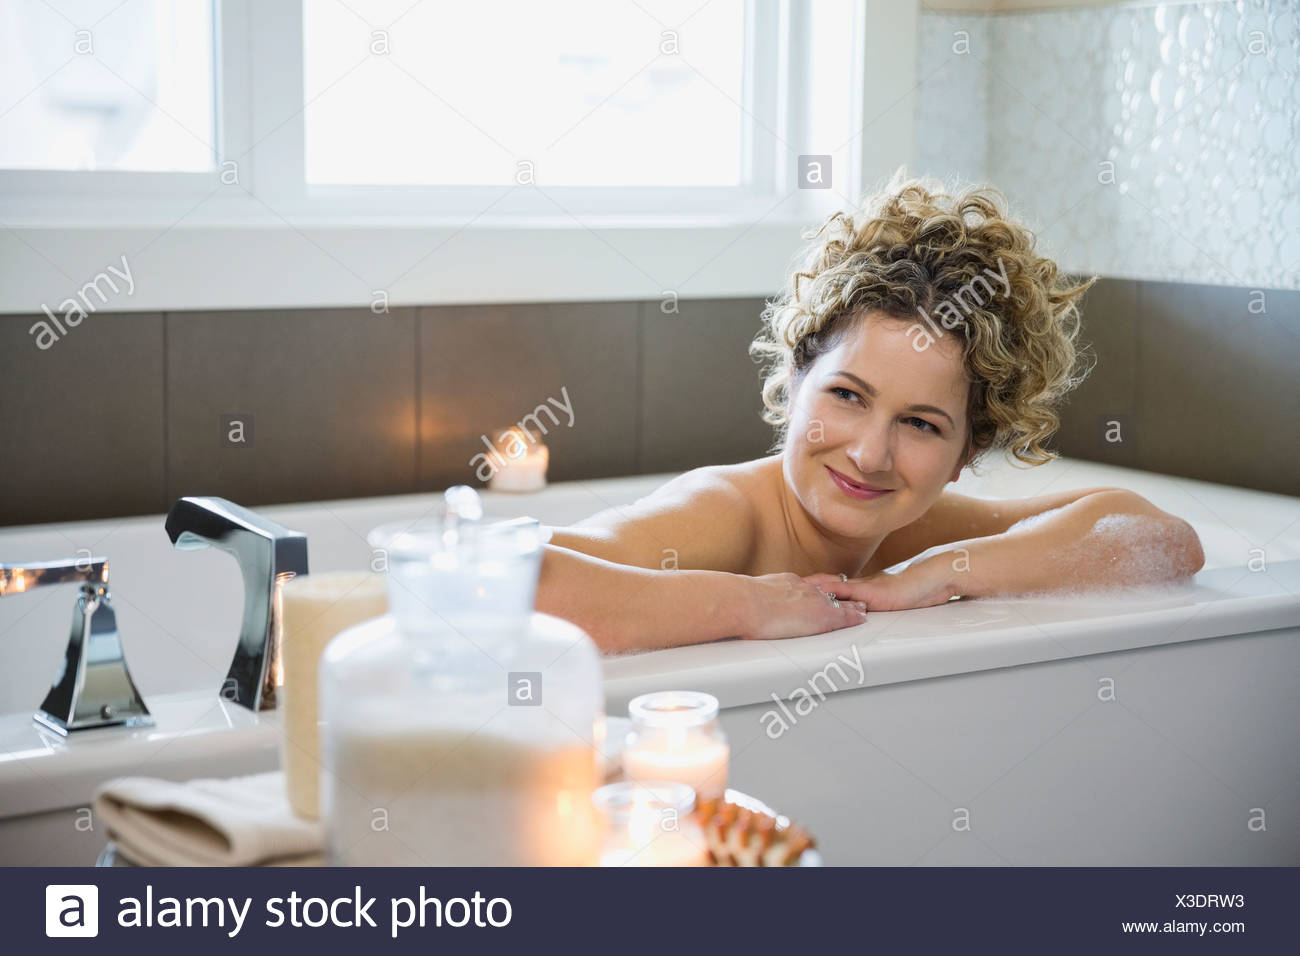 in Mature bathtub woman